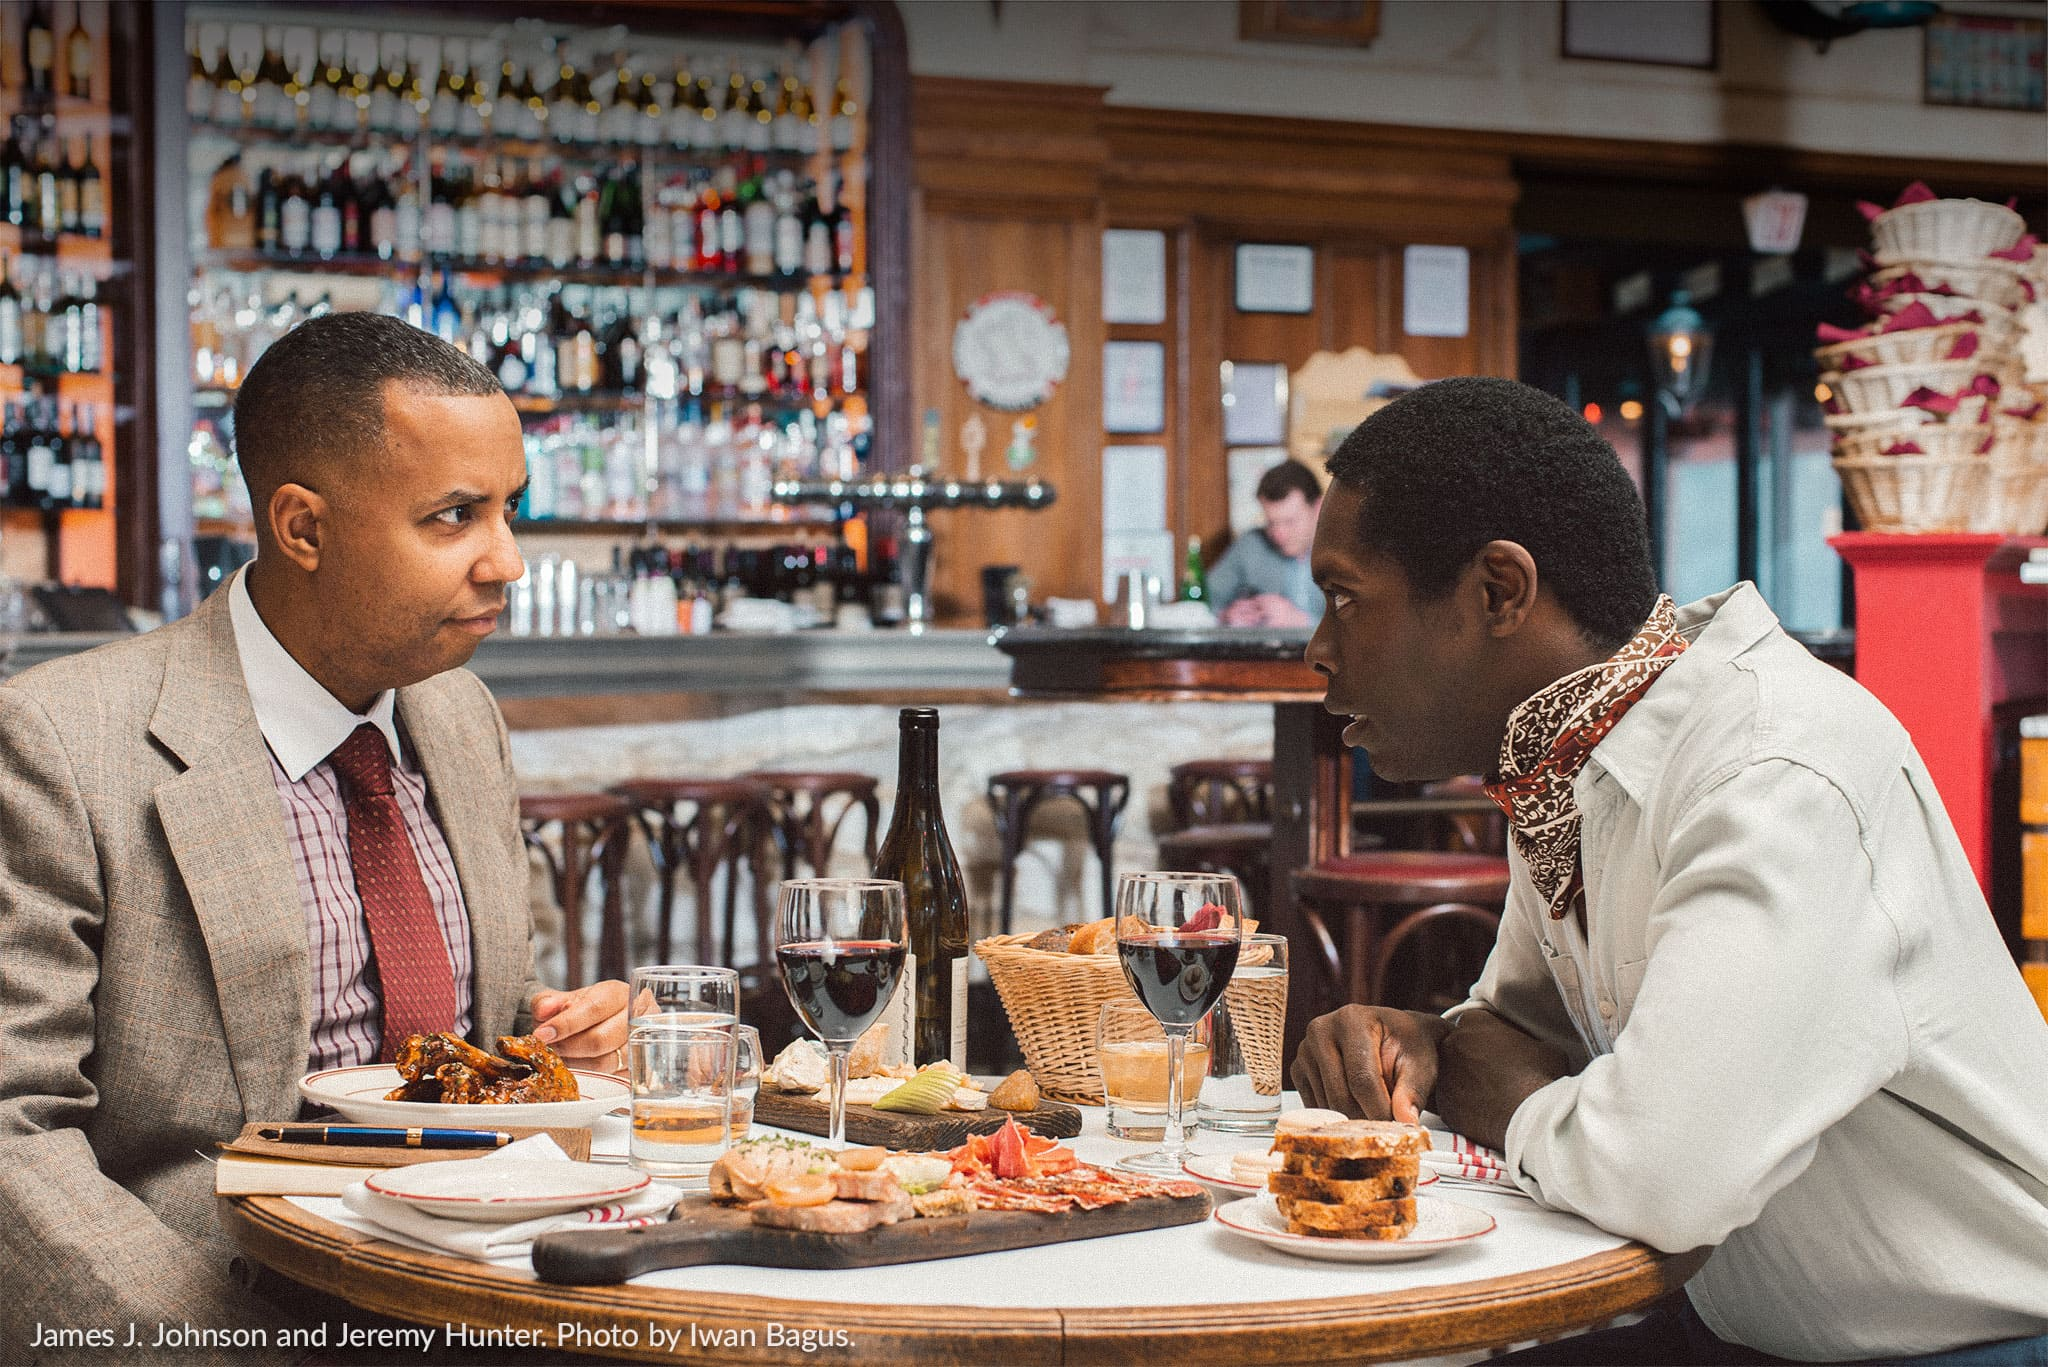 James J. Johnson as Richard Wright and Jeremy Hunter as James Baldwin in 'Les Deux Noirs.' Photo by Iwan Bagus.